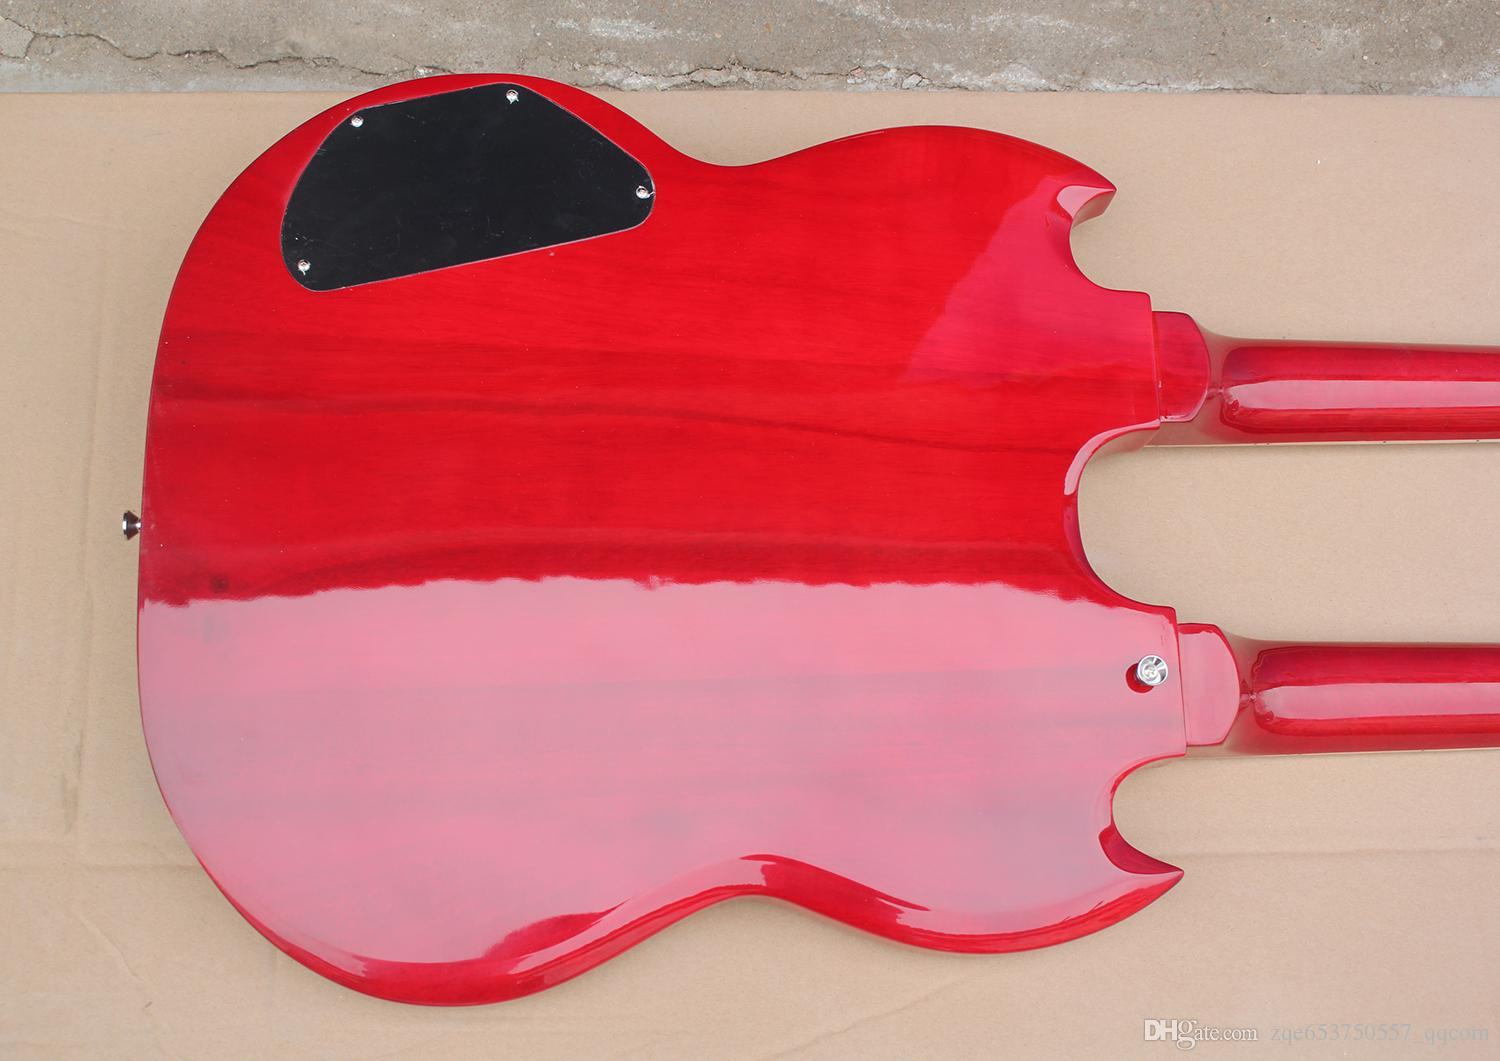 The Wholesale-2015 Hot Sale Customized Red Two-neck Electric Guitar with 12 Strings and 6 Strings Respectively